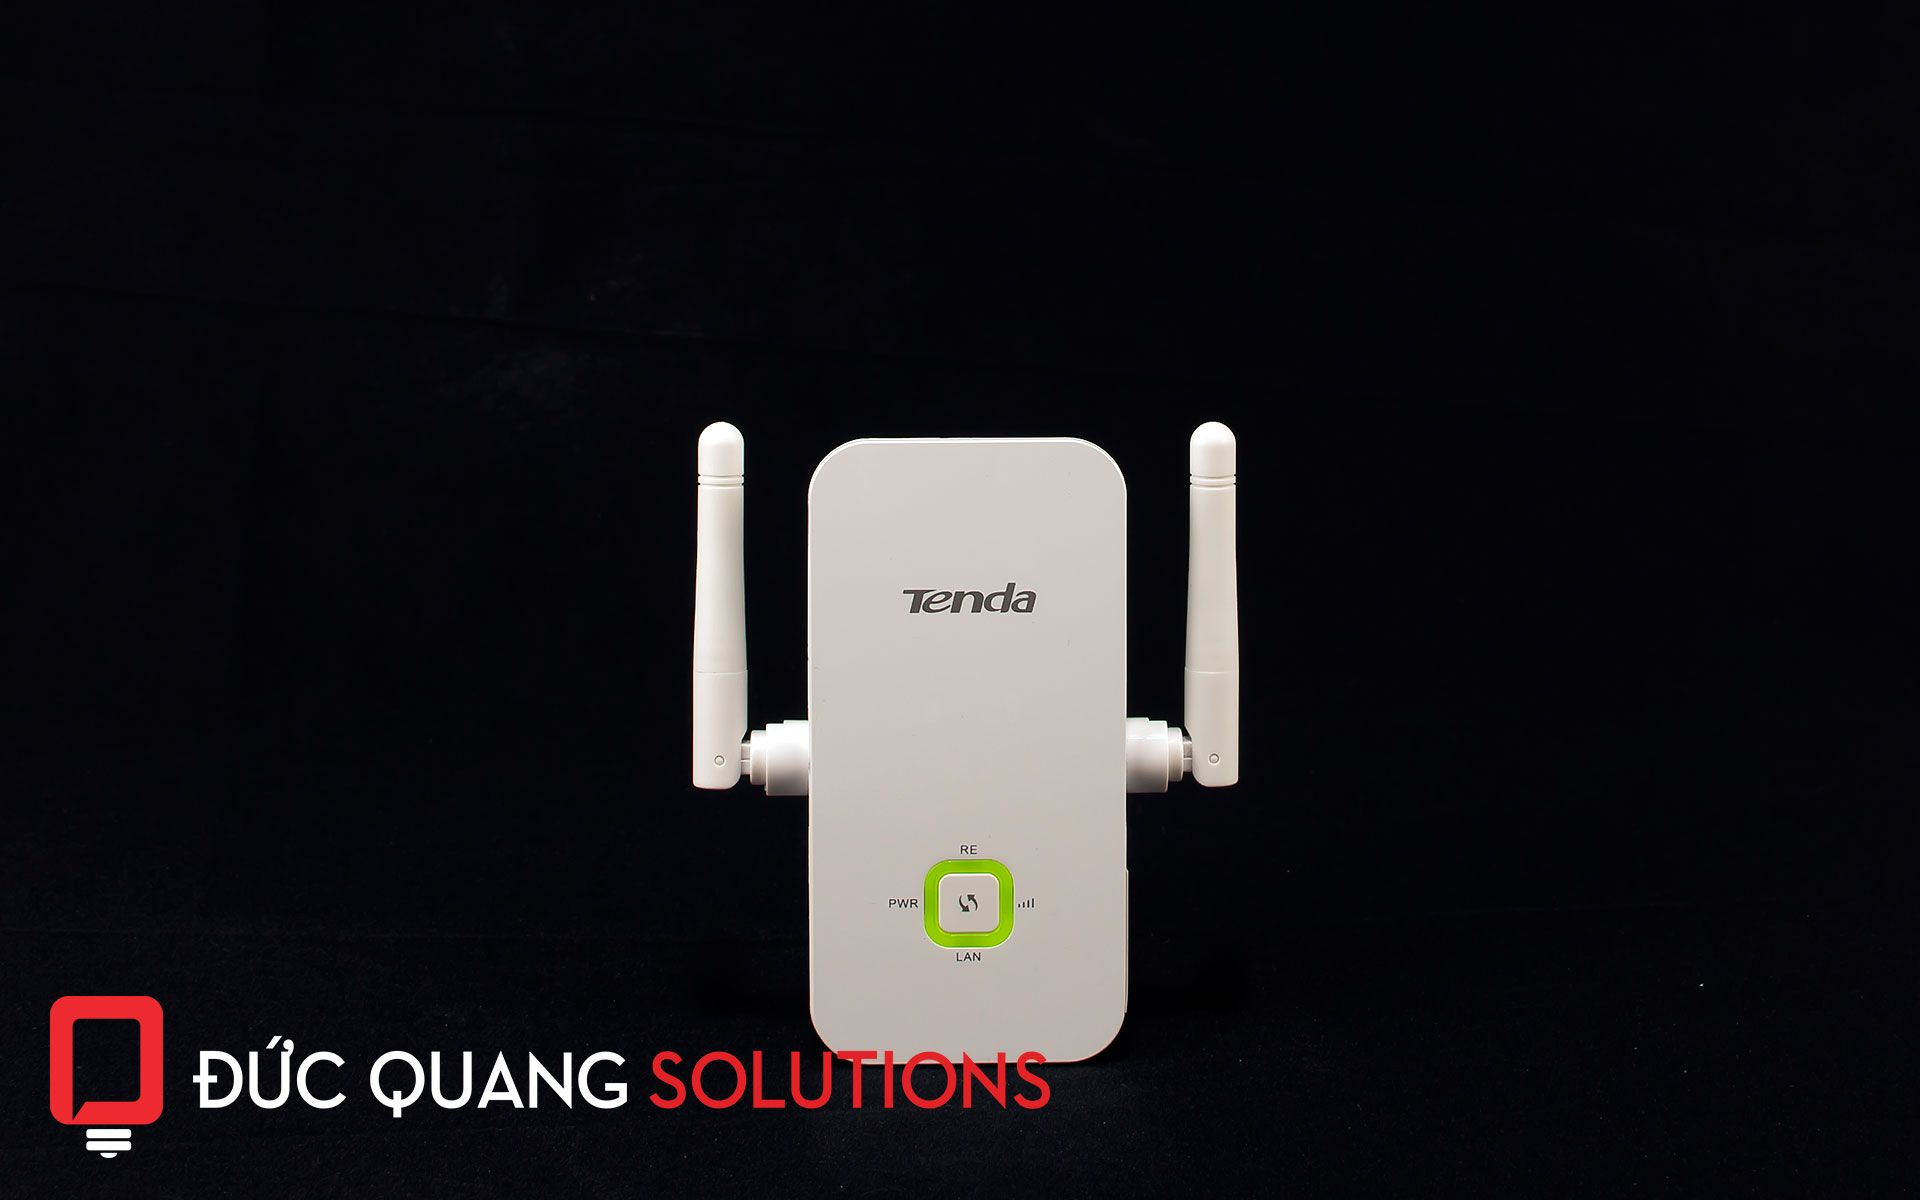 Tenda A301 - Khuech dai song WiFi